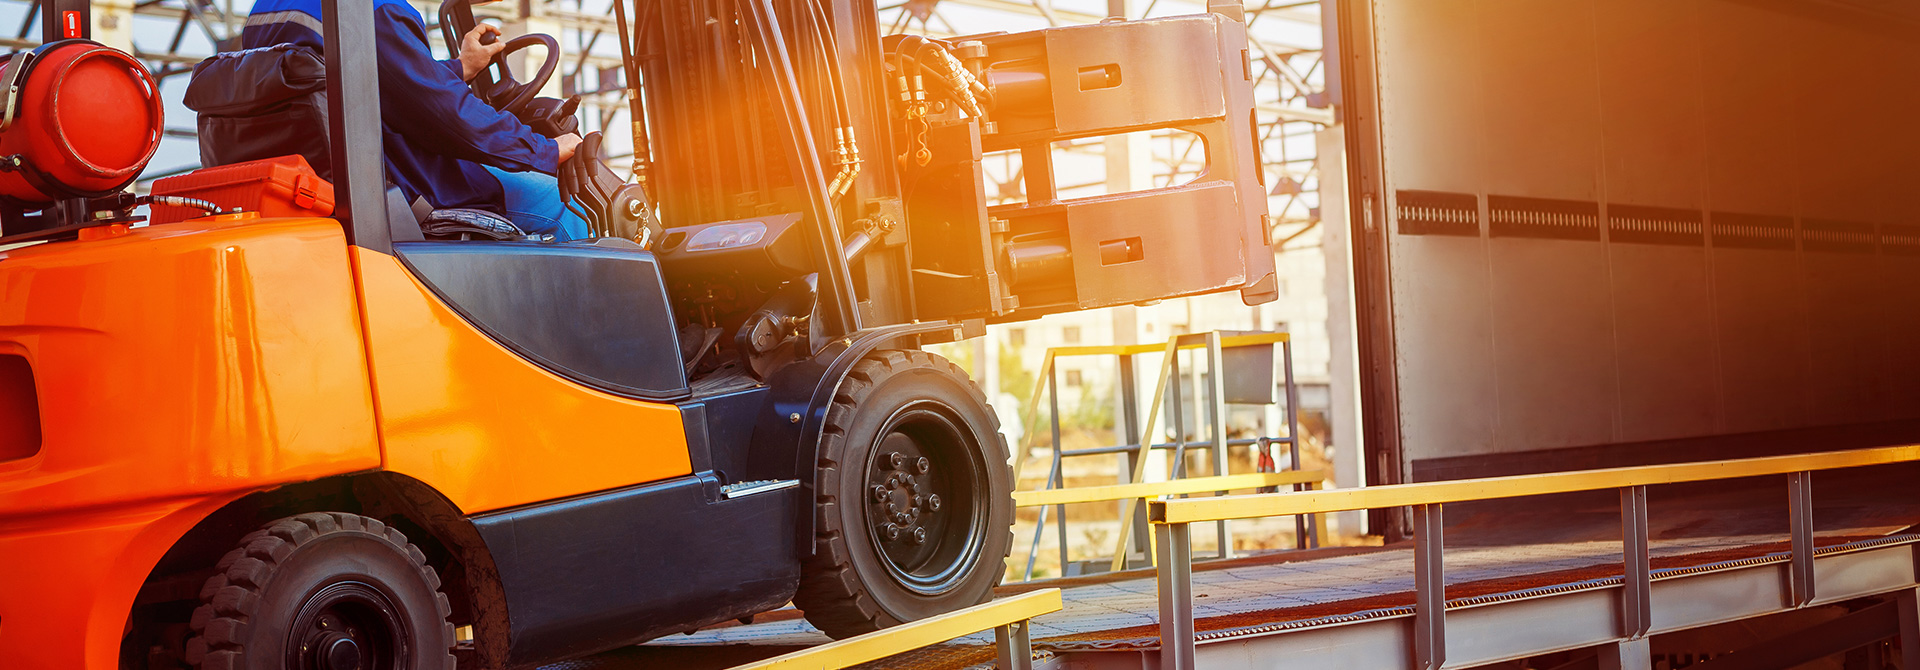 Man using heavy machinery to load a truck with supplies | Virginia Defective Machinery Attorneys